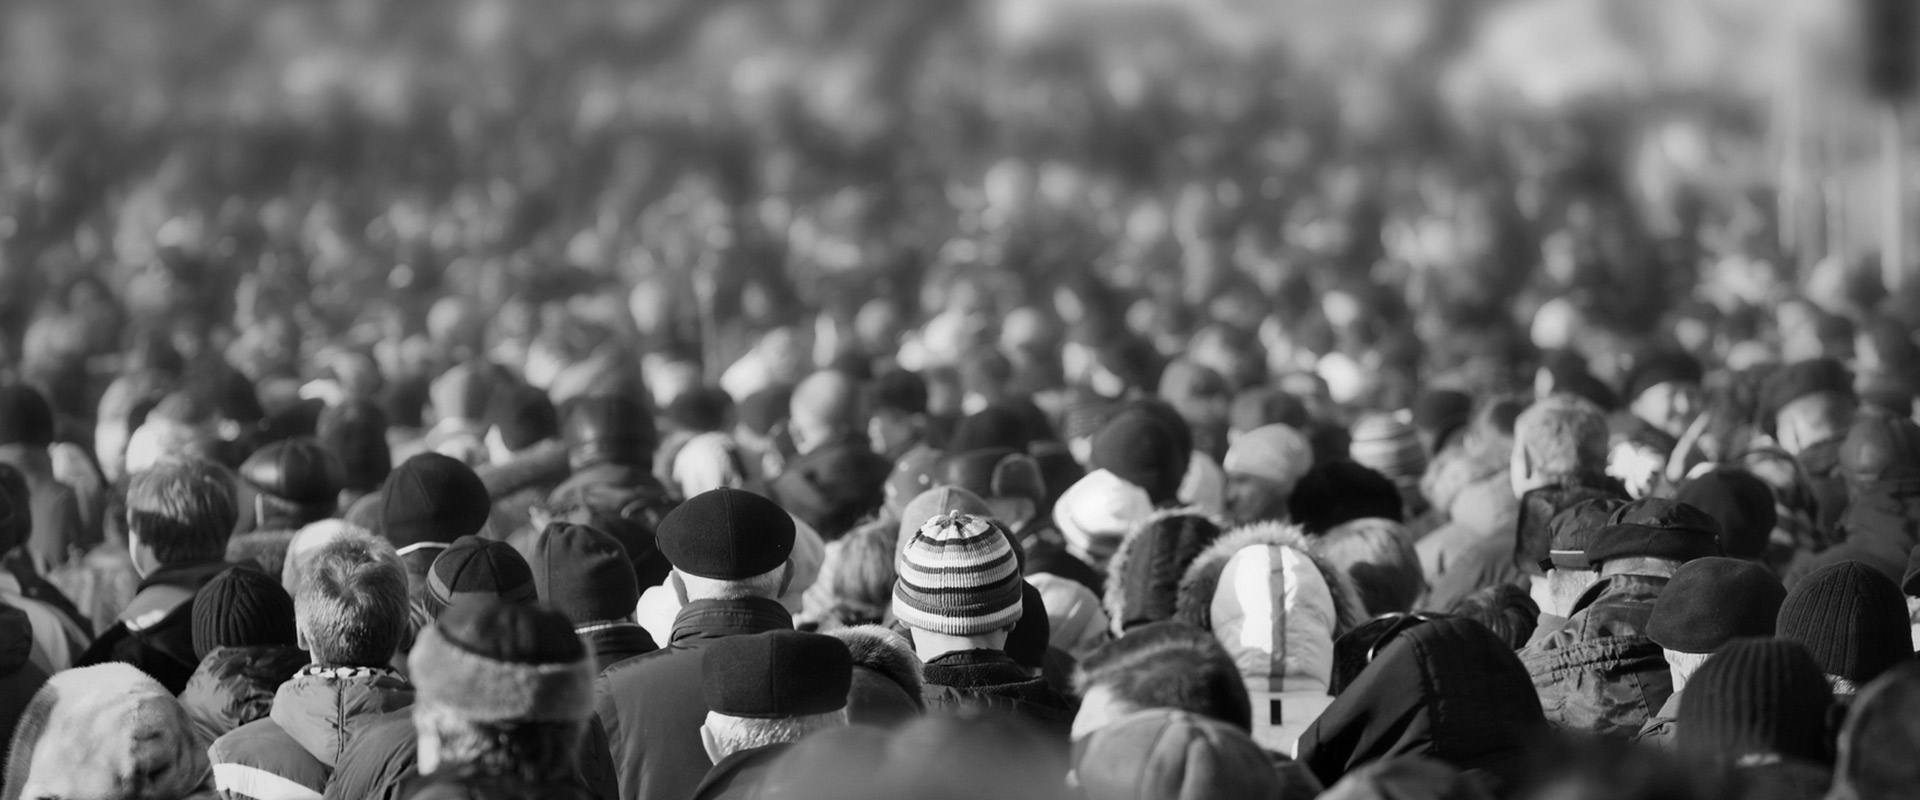 Stock photograph of a crowd of people